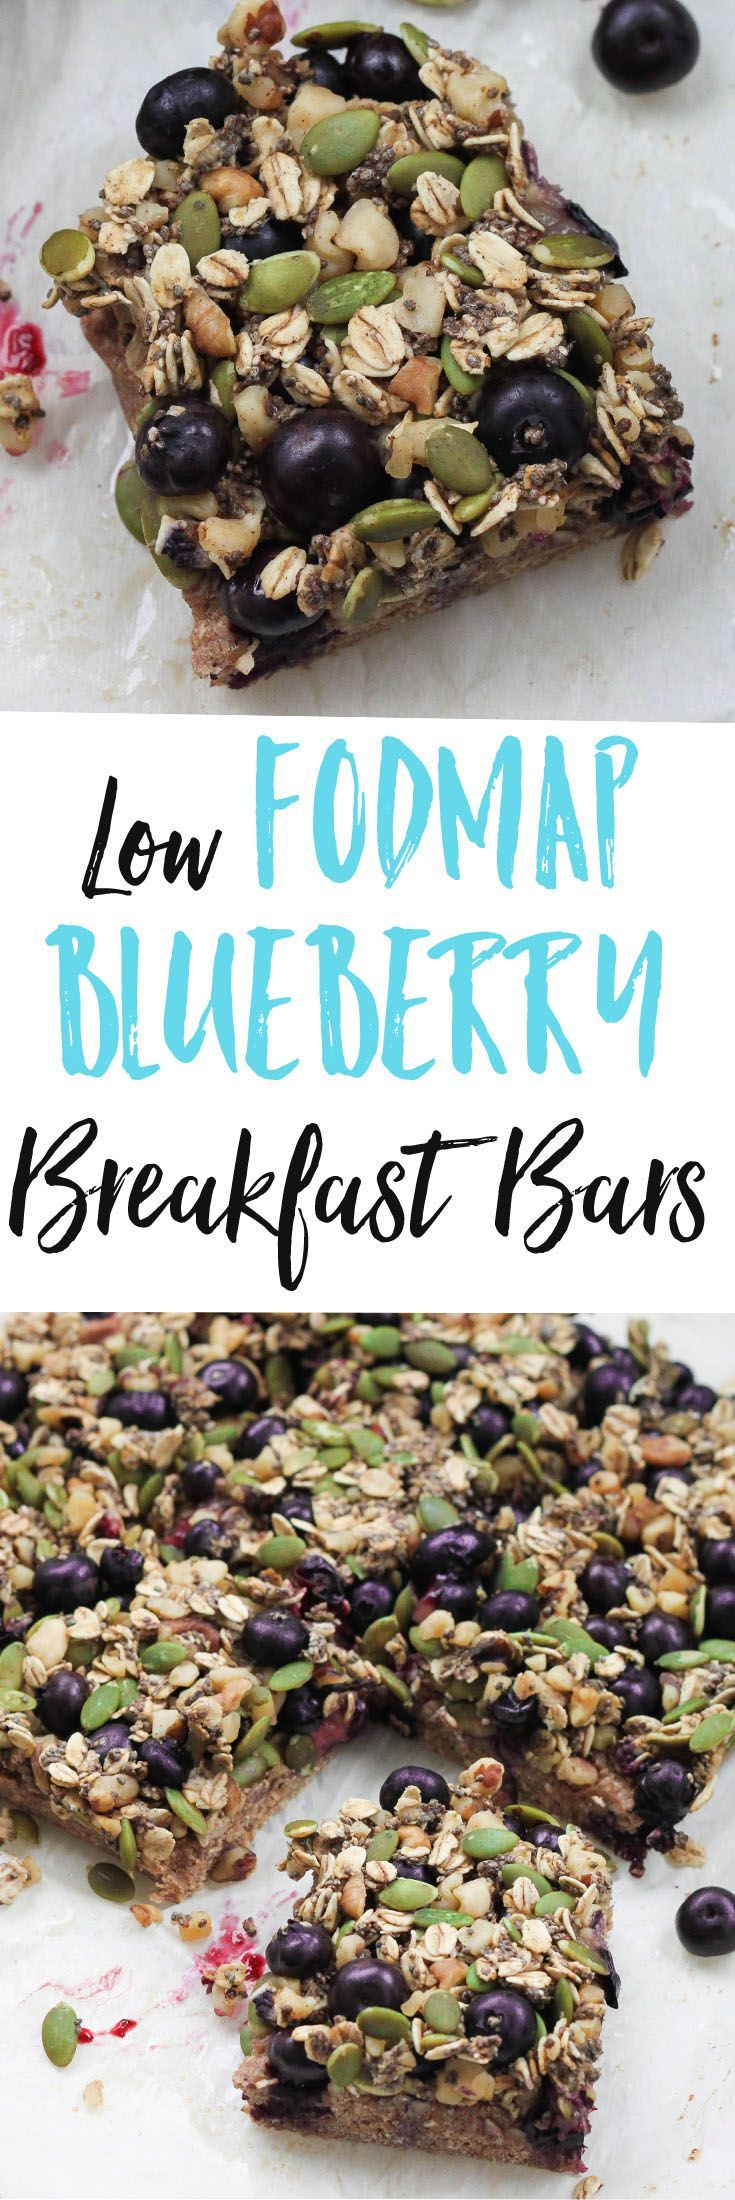 Your IBS elimination phase is easy with these Low FODMAP Blueberry Breakfast Bars, which can also easily be made vegan and gluten free. via @euphorianutr (Ibs Diet Recipes)